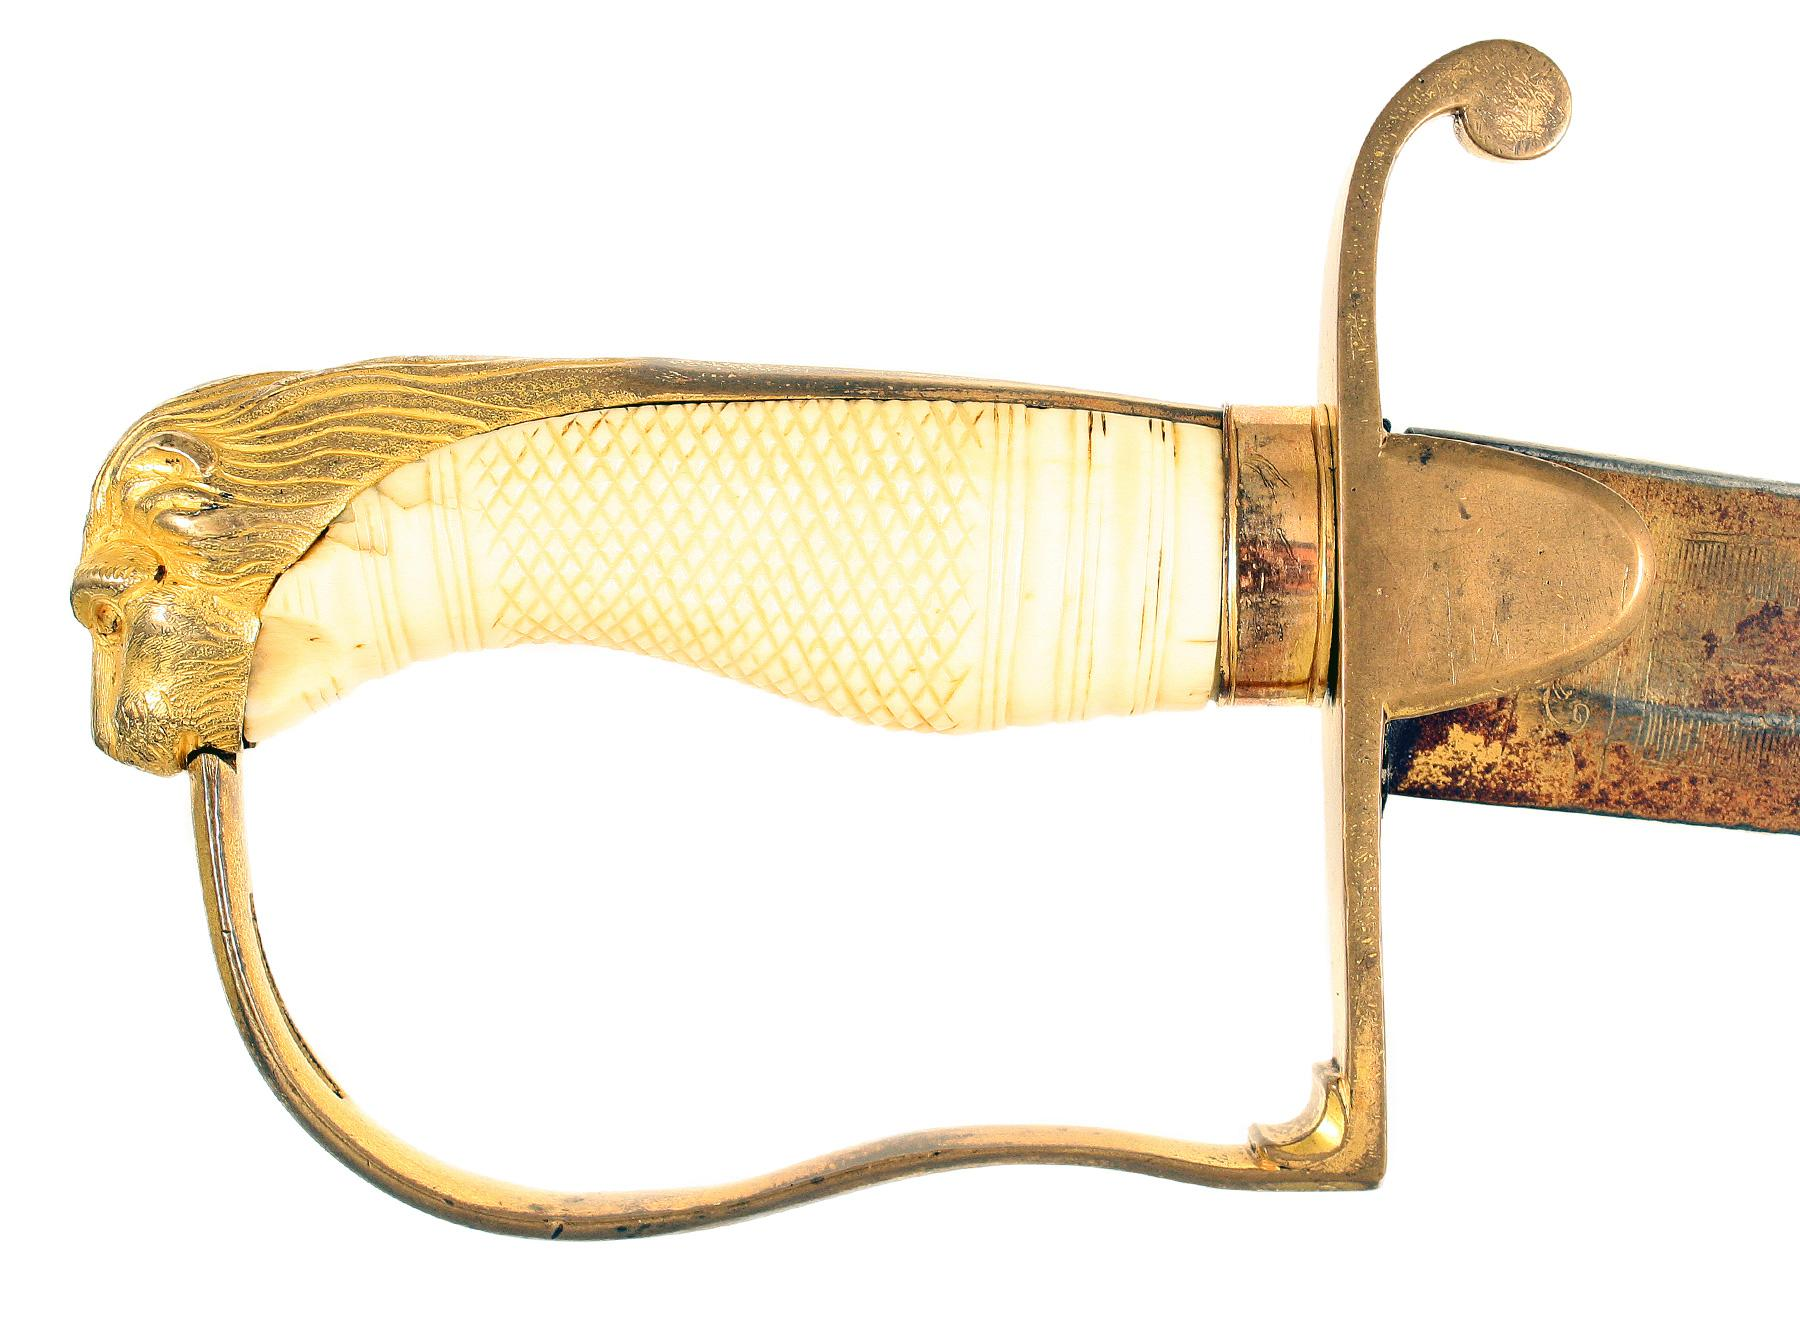 A Historic Blue & Gilt Sword